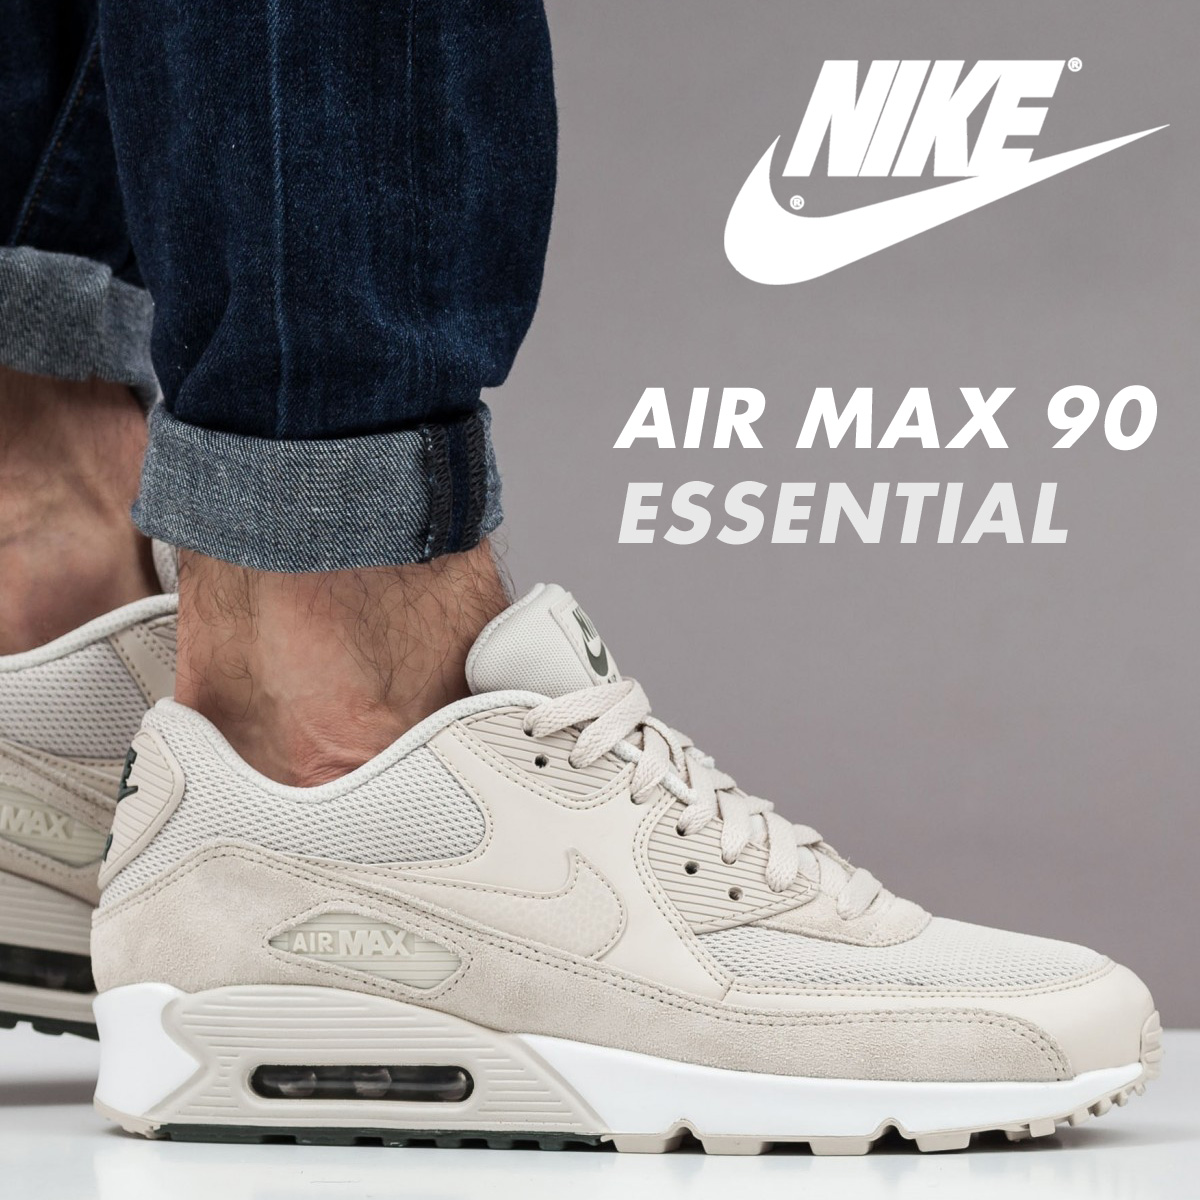 NIKE AIR MAX 90 SE PREMIUM ESSENTIAL RIPSTOP GREY RED WHITE MEN'S TRAINERS BRAND NEW BOXED 6 11 i Huddersfield, West YorkshireGumtree i Huddersfield, West Yorkshire Gumtree